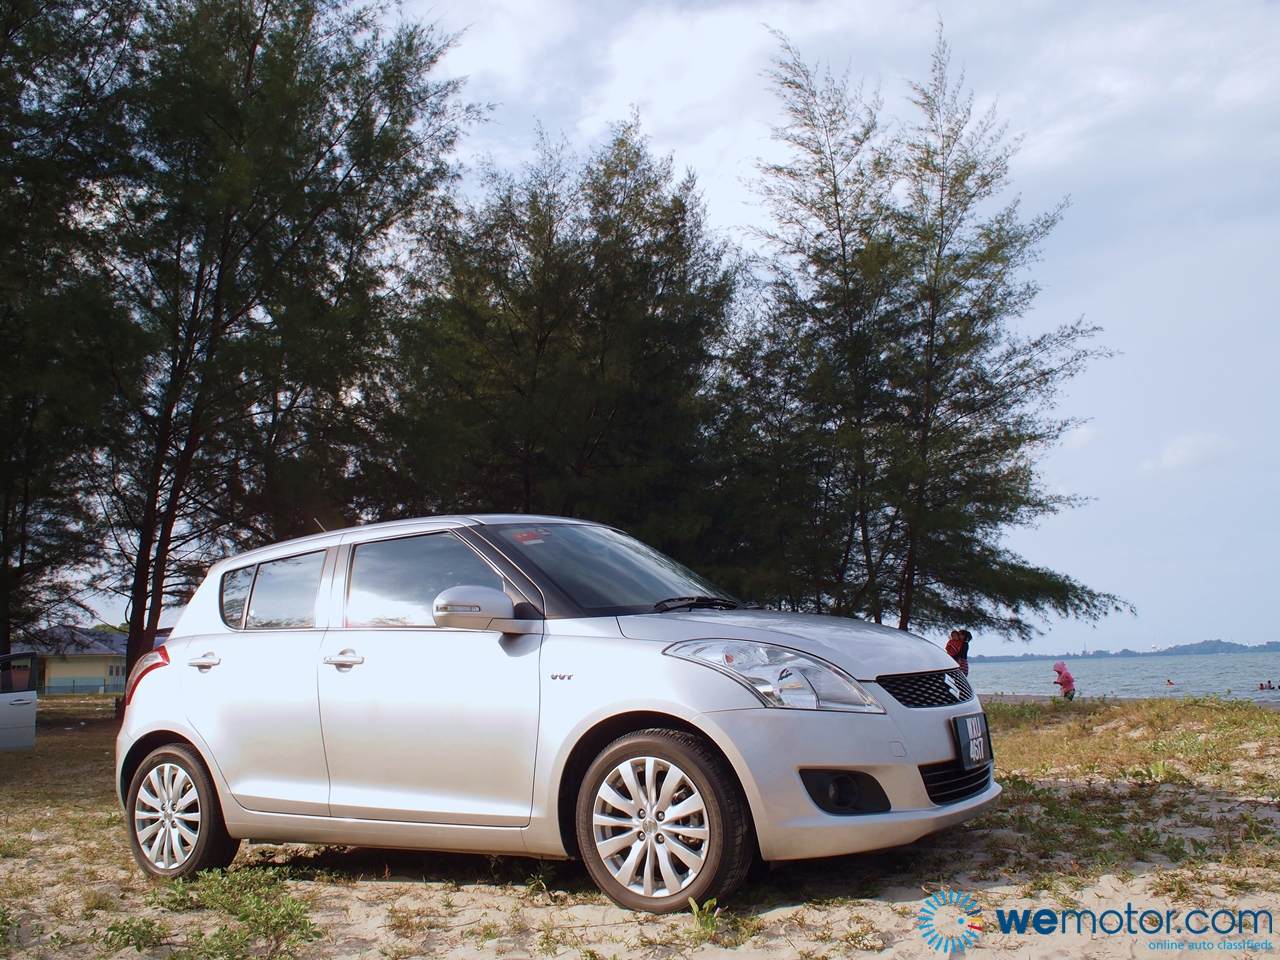 2013 Suzuki Swift 030